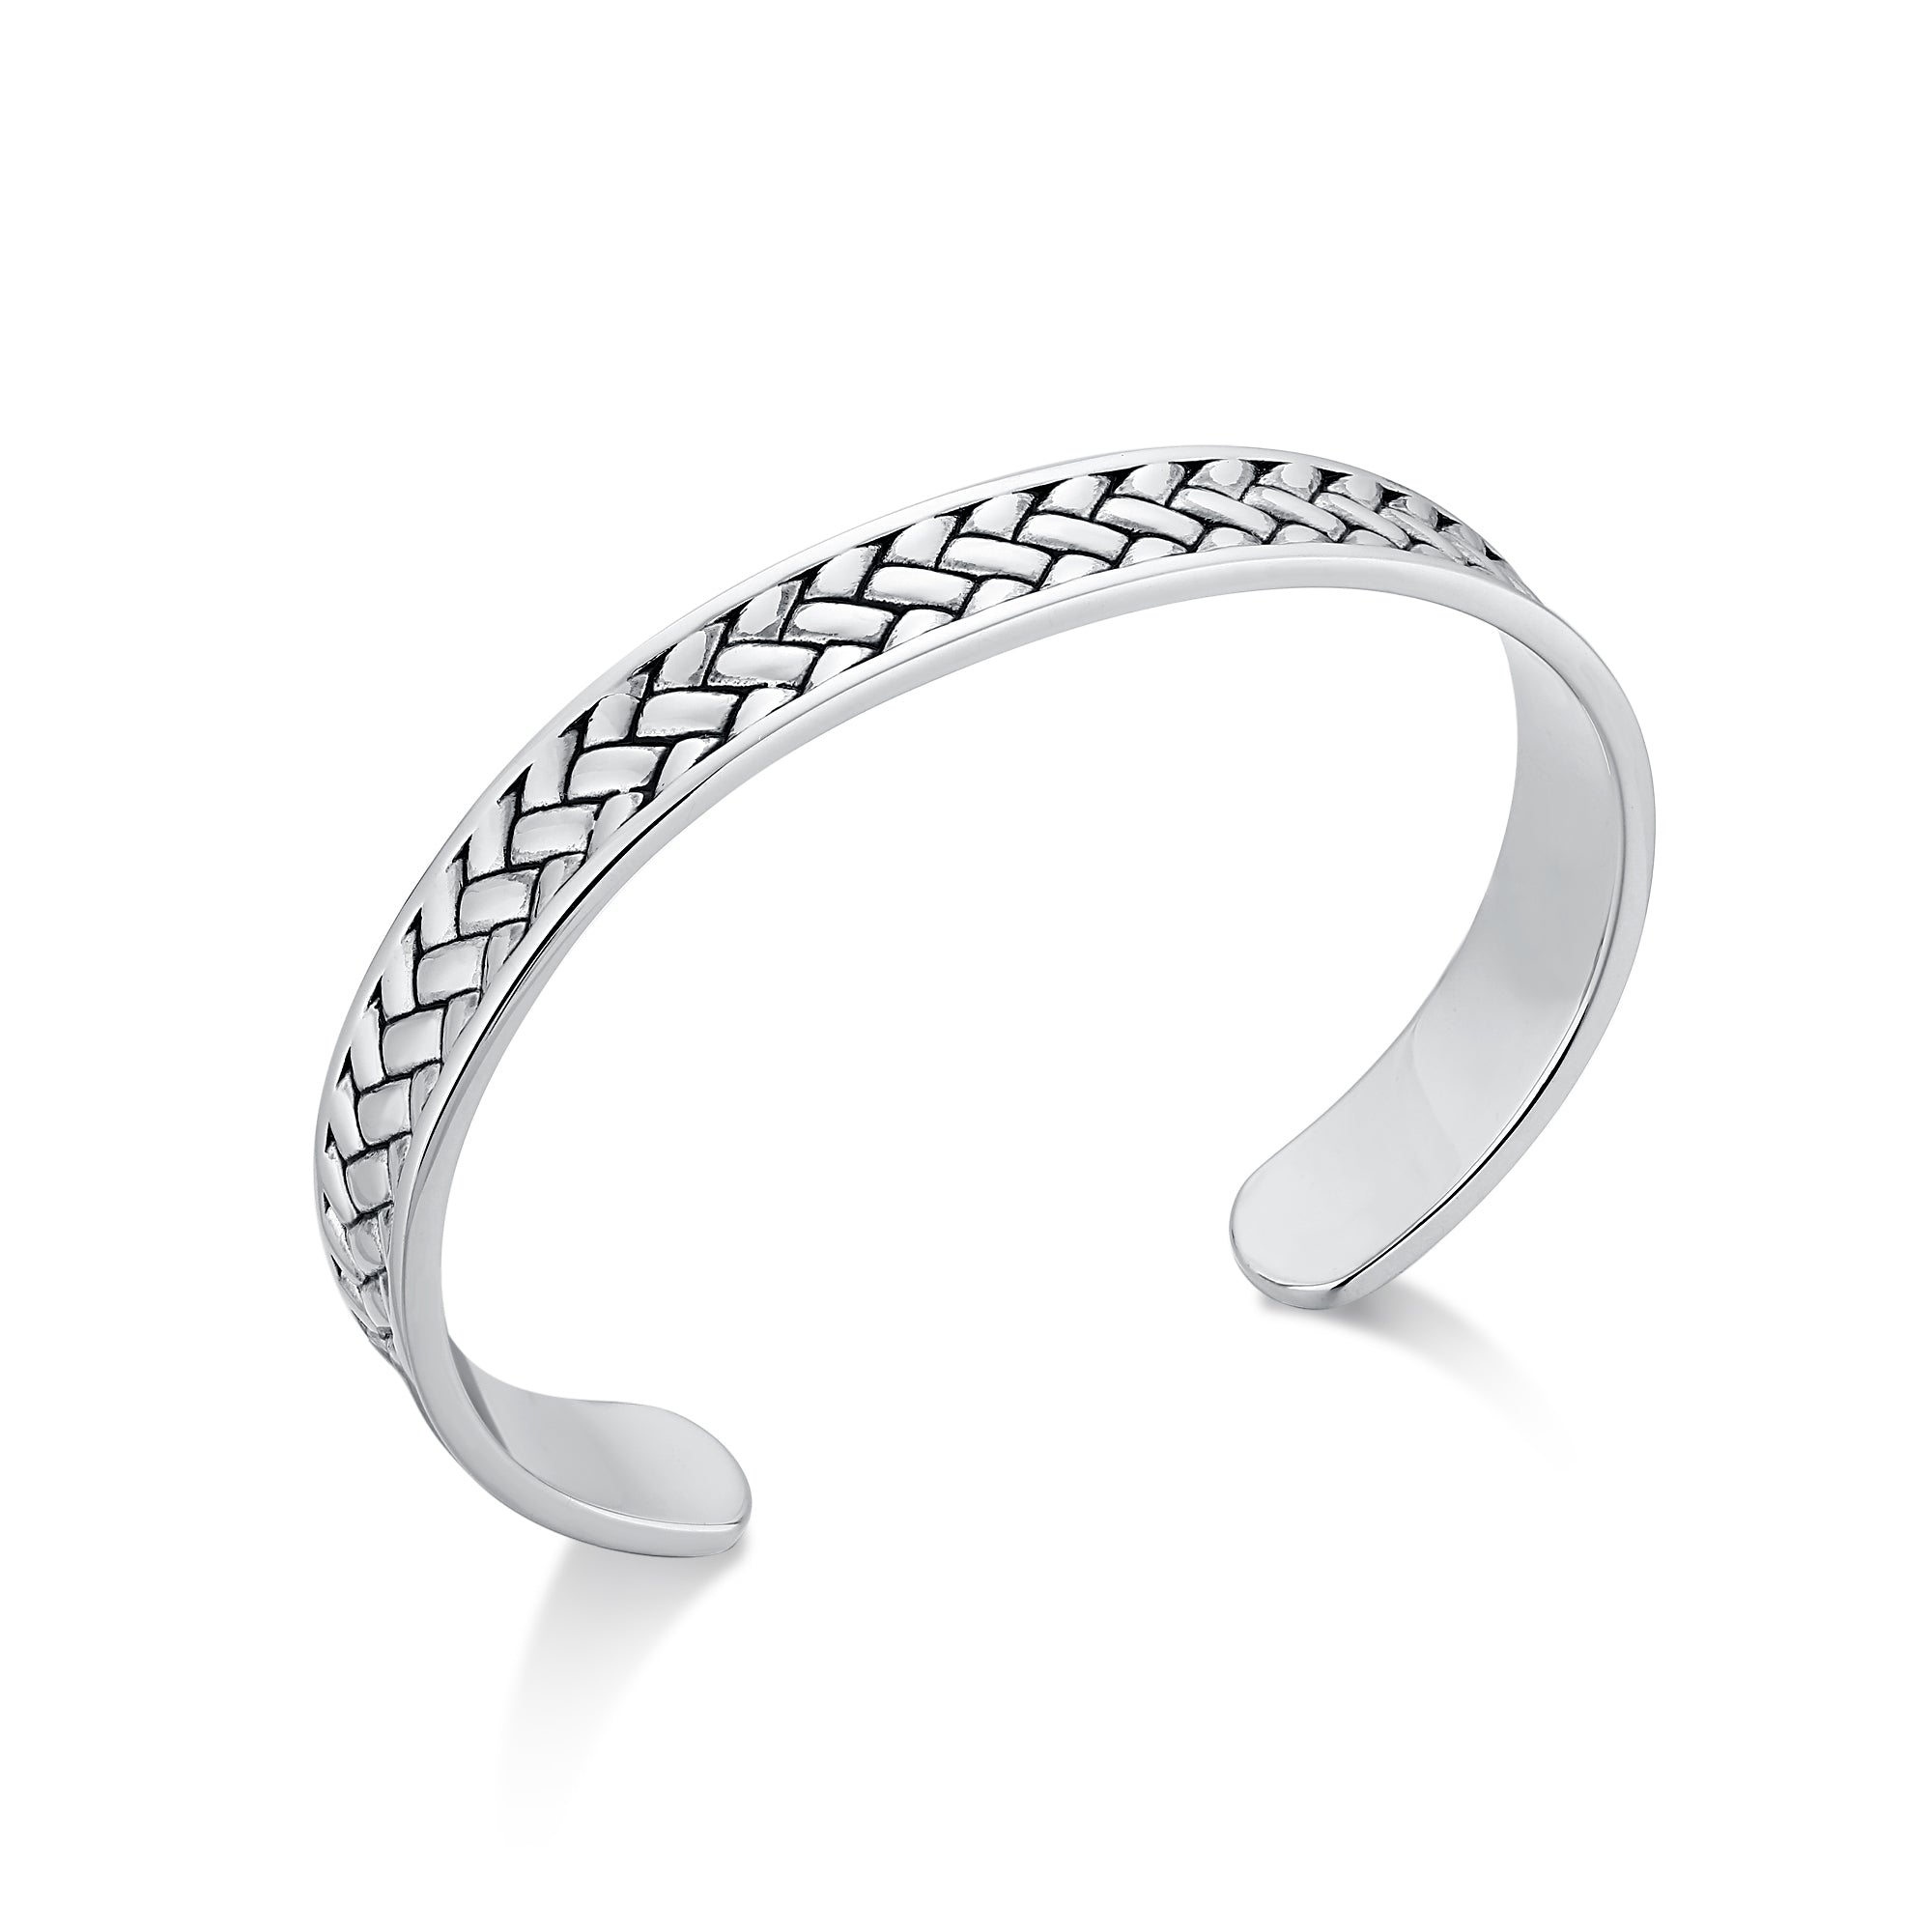 Rhodium Plated Narrow Cuff Bracelet with Woven Design